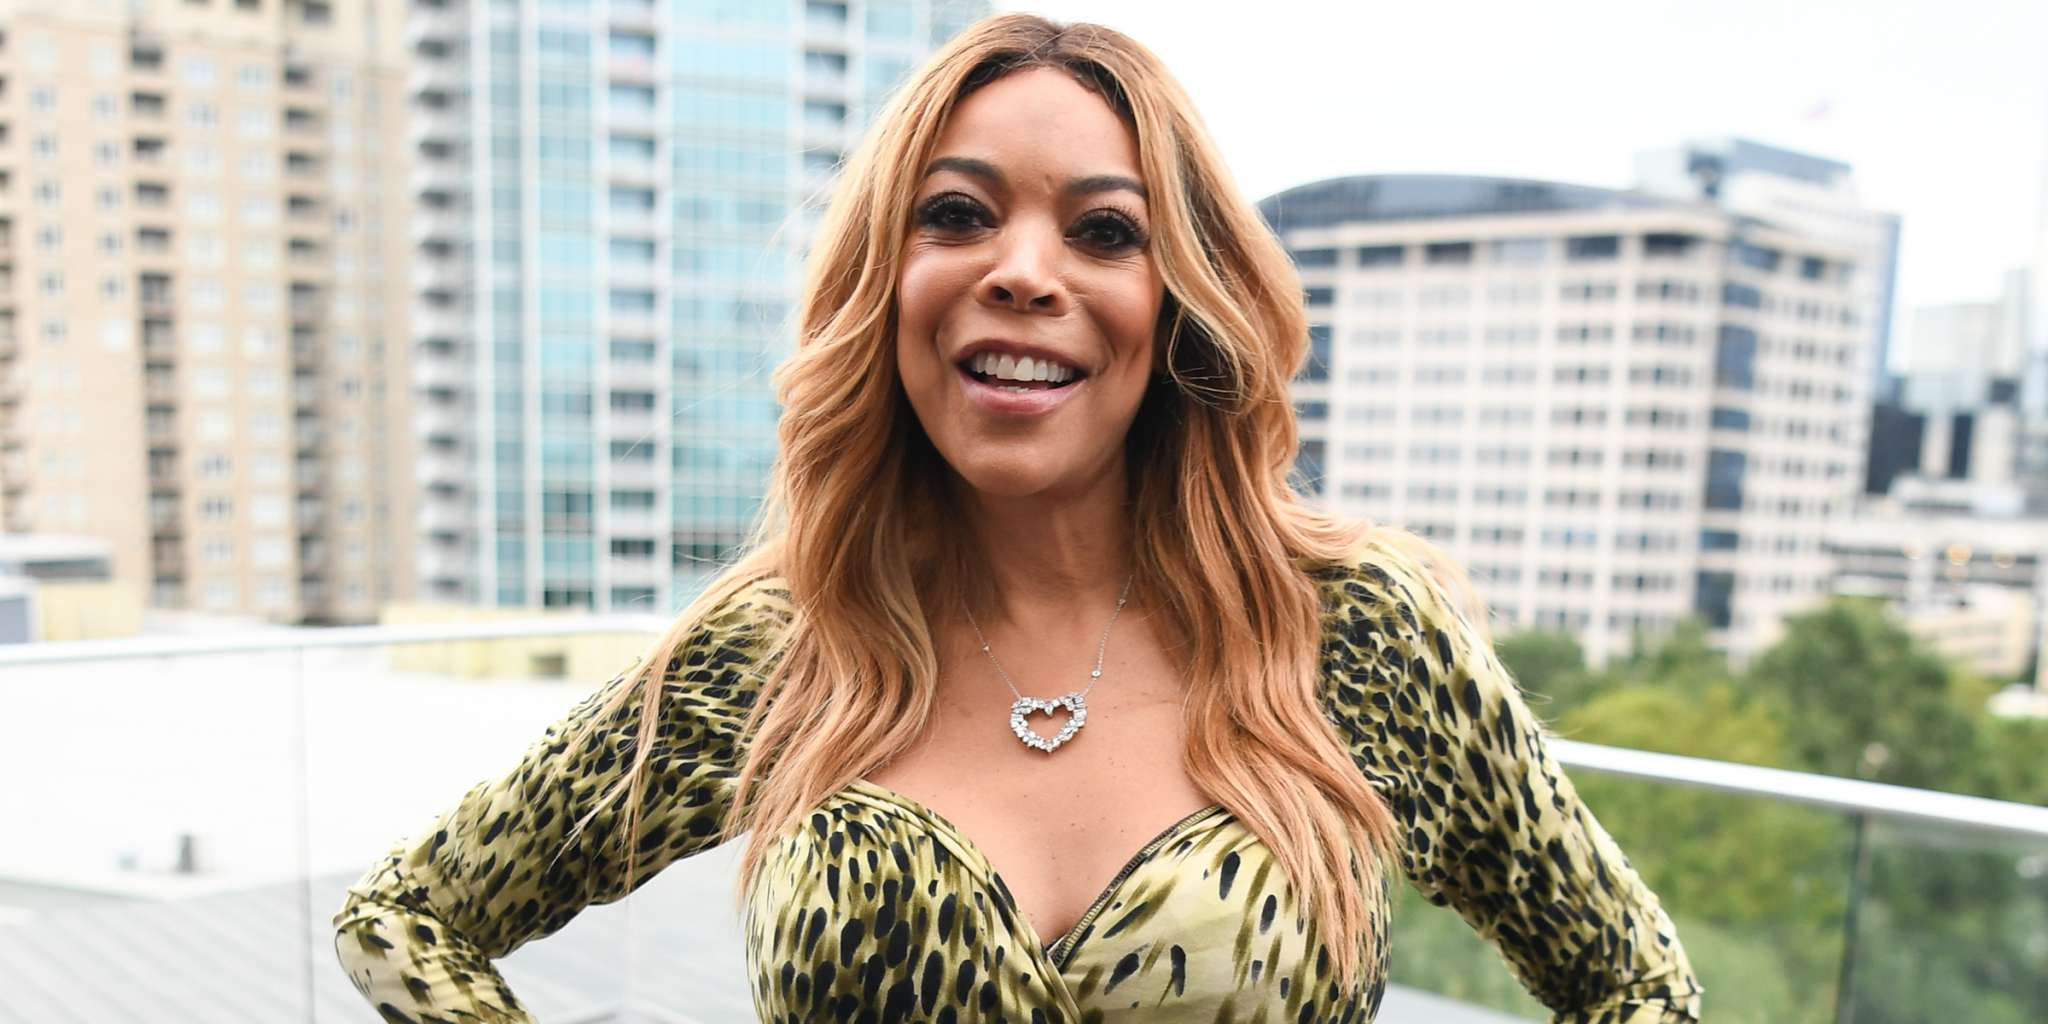 wendy-williams-slams-rumors-shes-frail-and-lonely-see-what-she-has-to-say